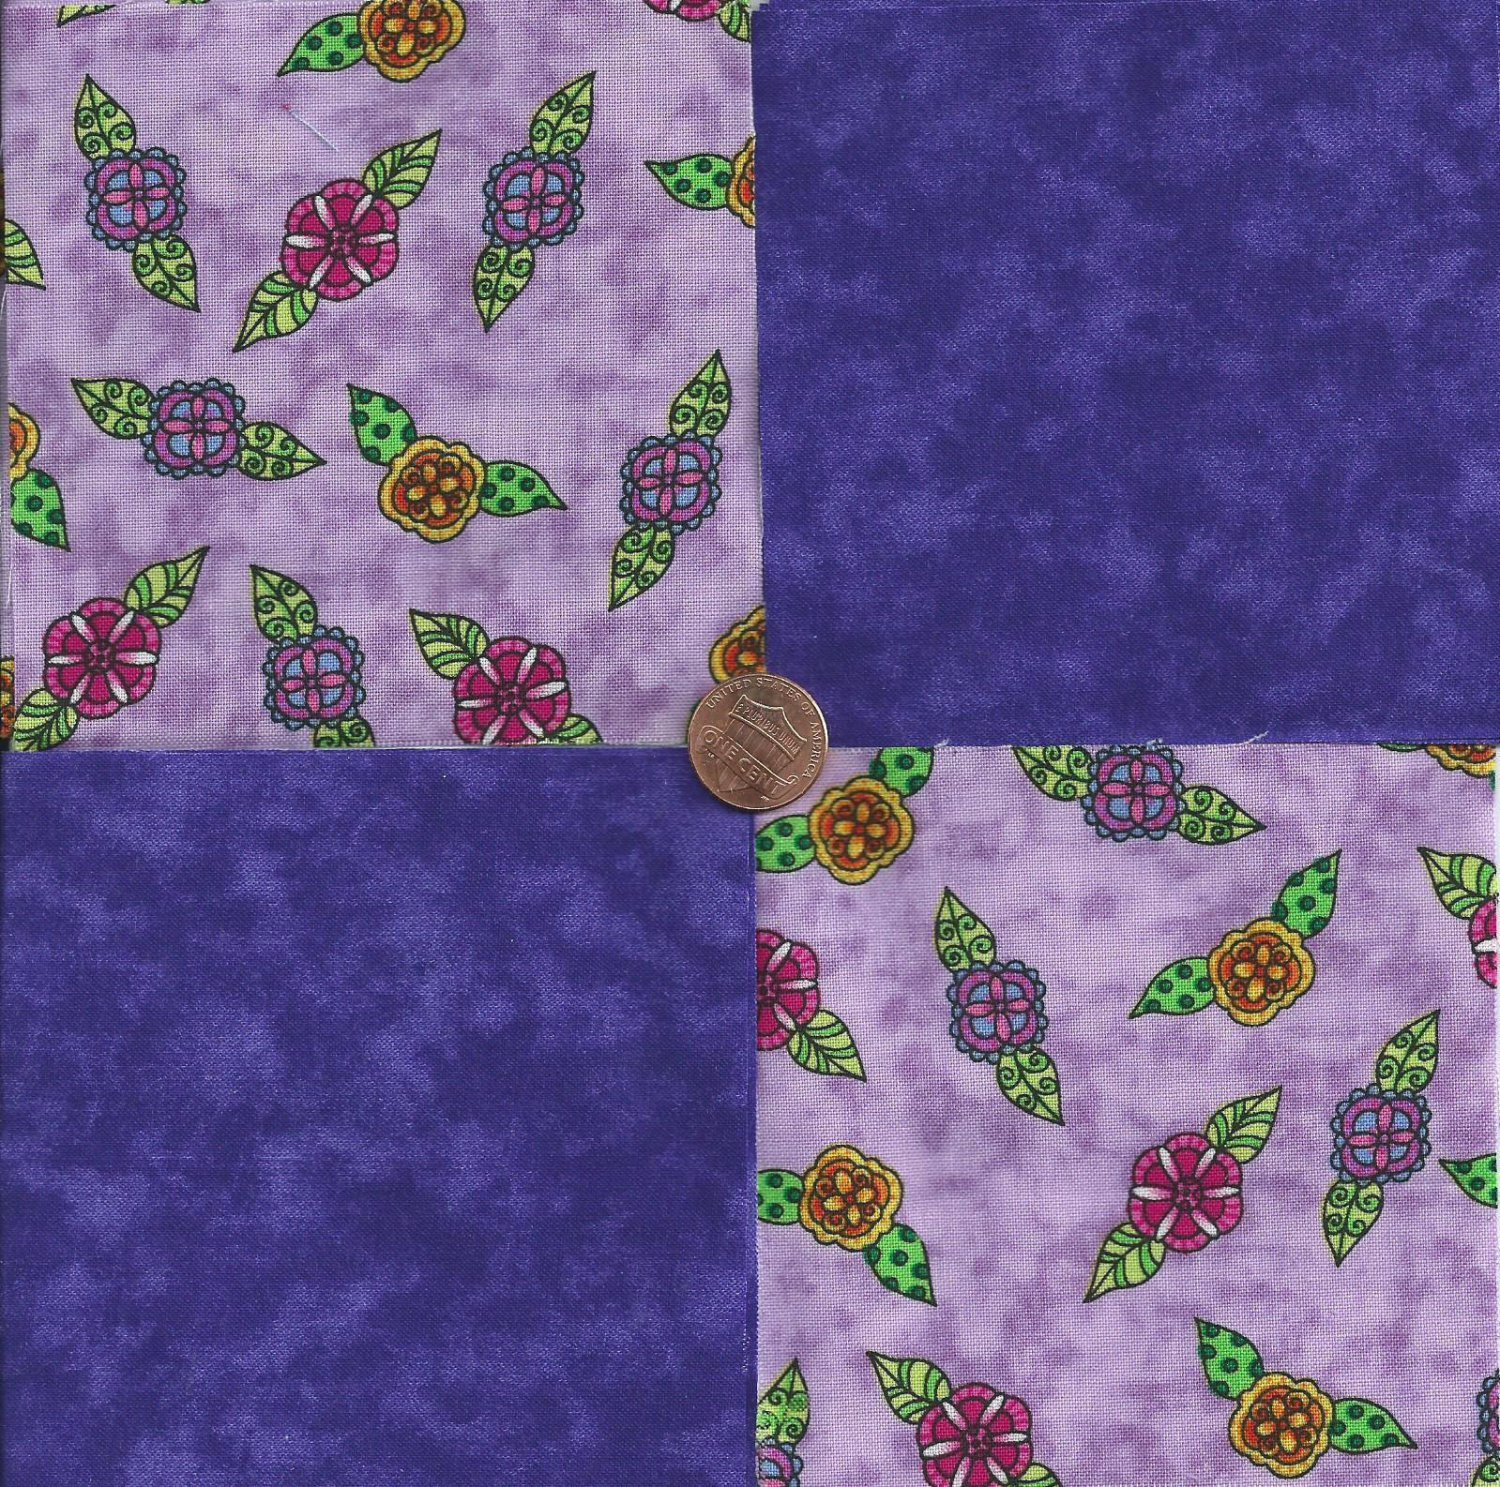 Whimsy Flowers on Lilac Purple    4 inch 100% Cotton Novely Fabric  Squares FS2